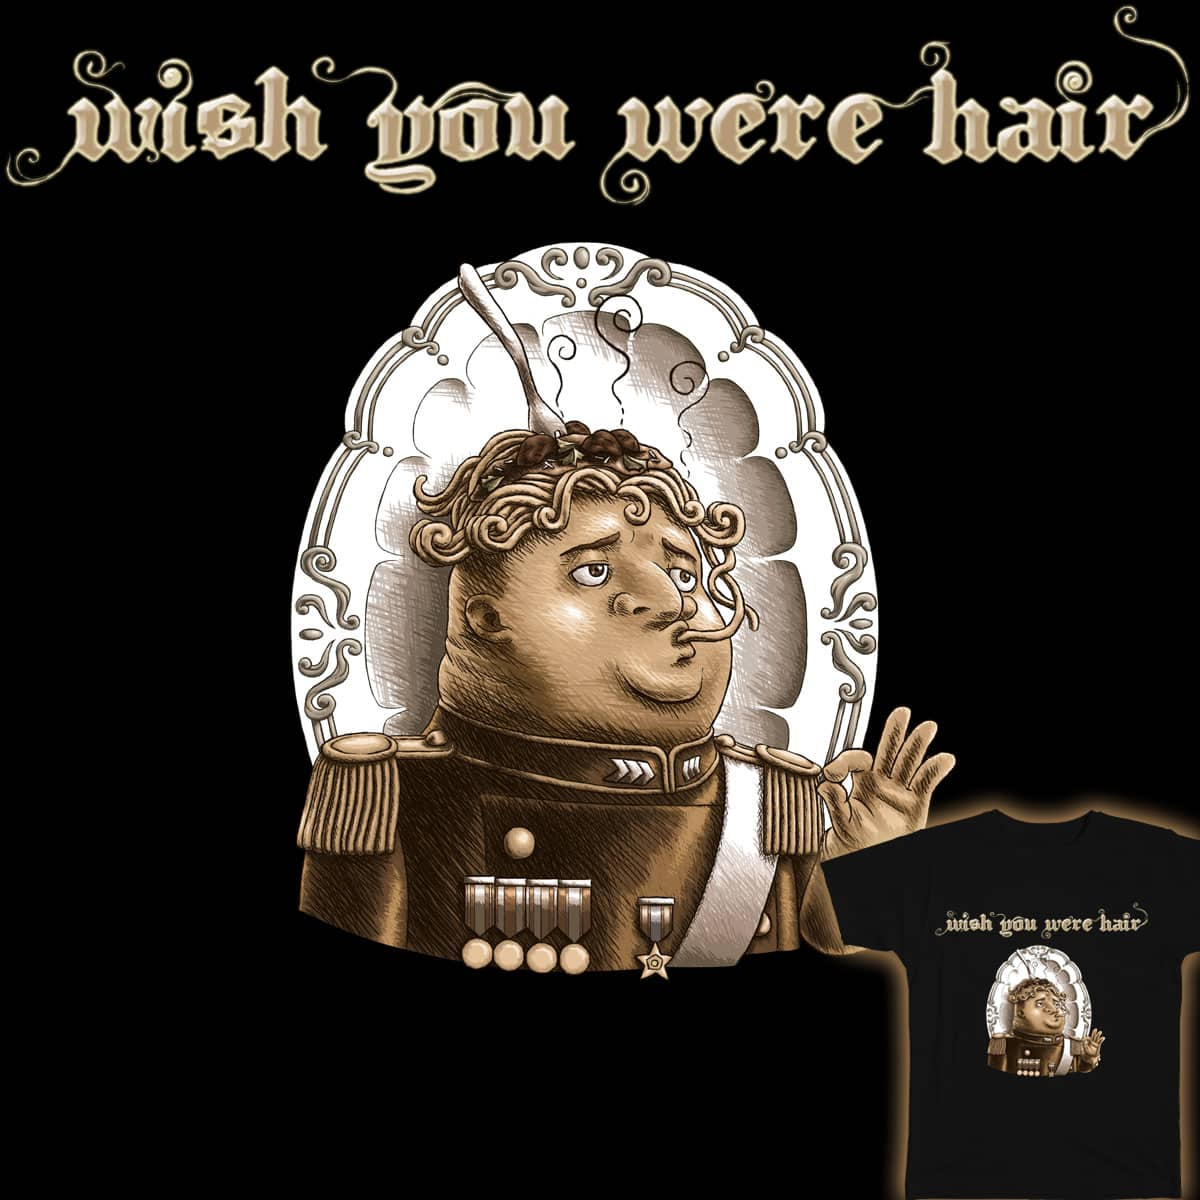 Wish You were Hair by pixiemichii on Threadless